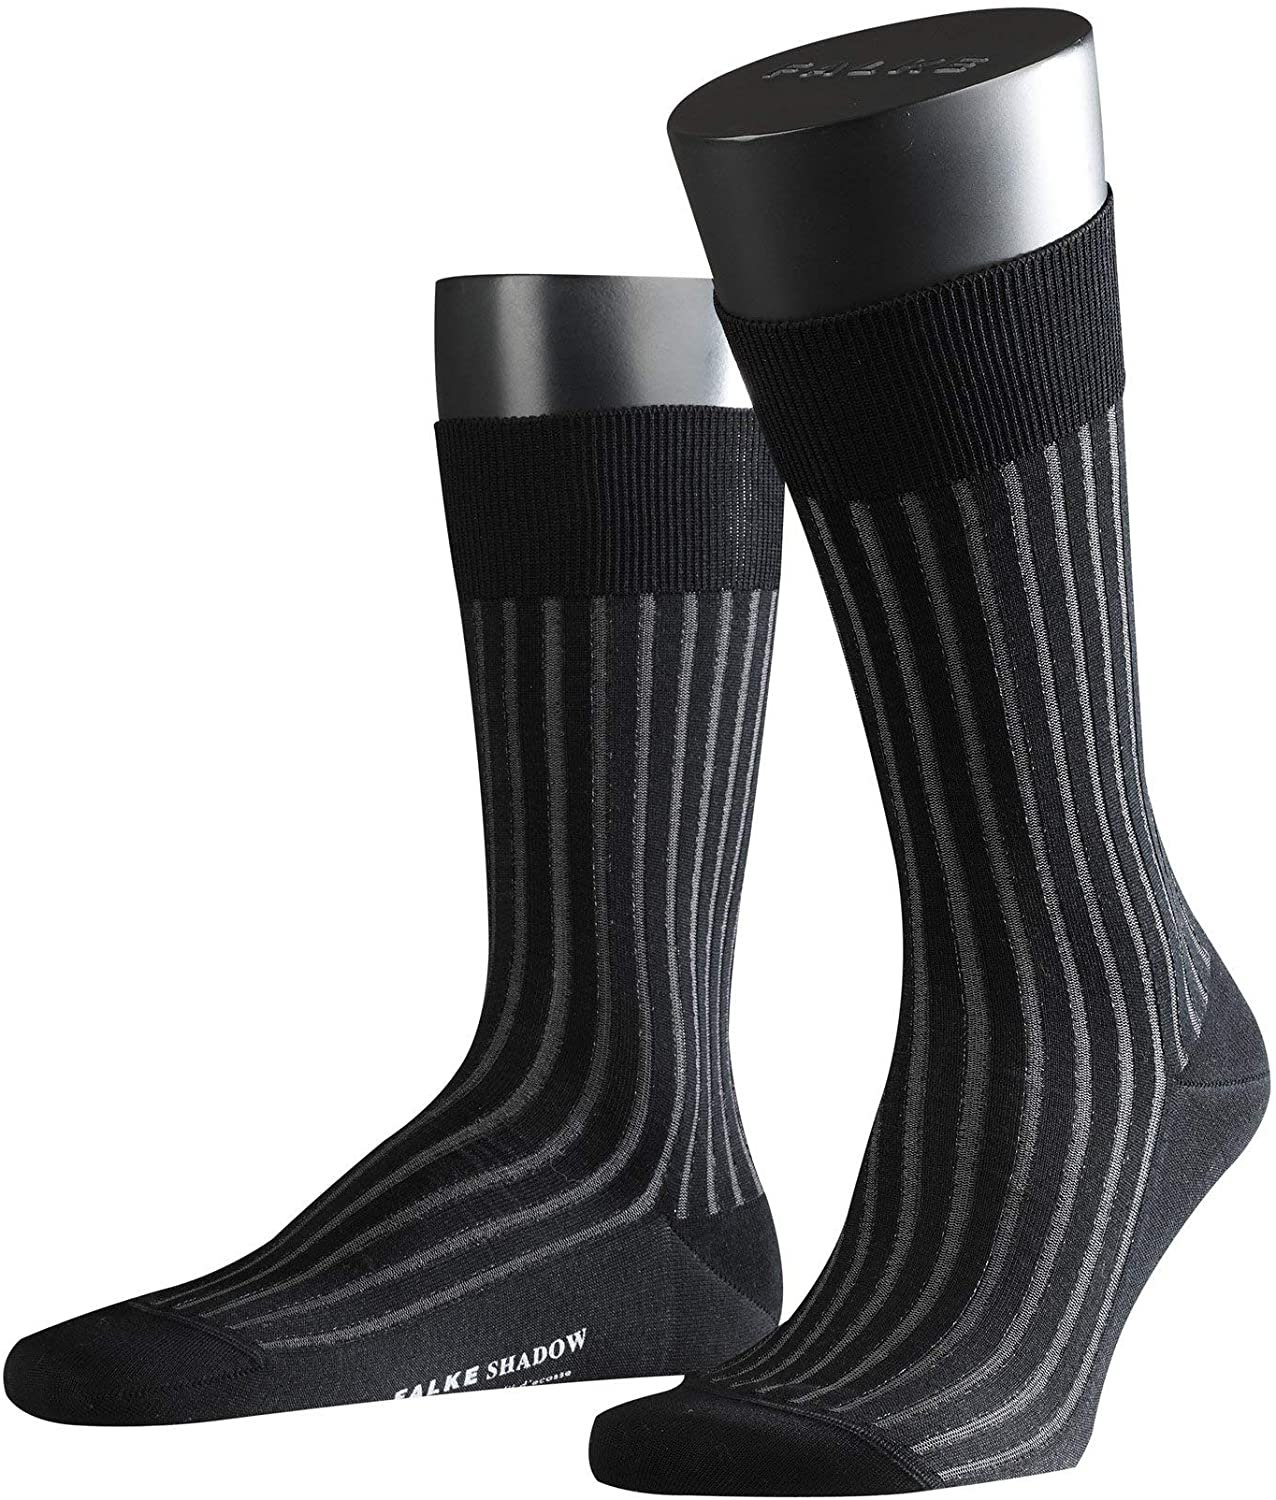 FALKE mens Shadow Dress Sock - 95% Cotton, Grey (Grey-White 3030), US 12.5-13.5 (EU 47-48 Ι UK 11.5-12.5), 1 Pair